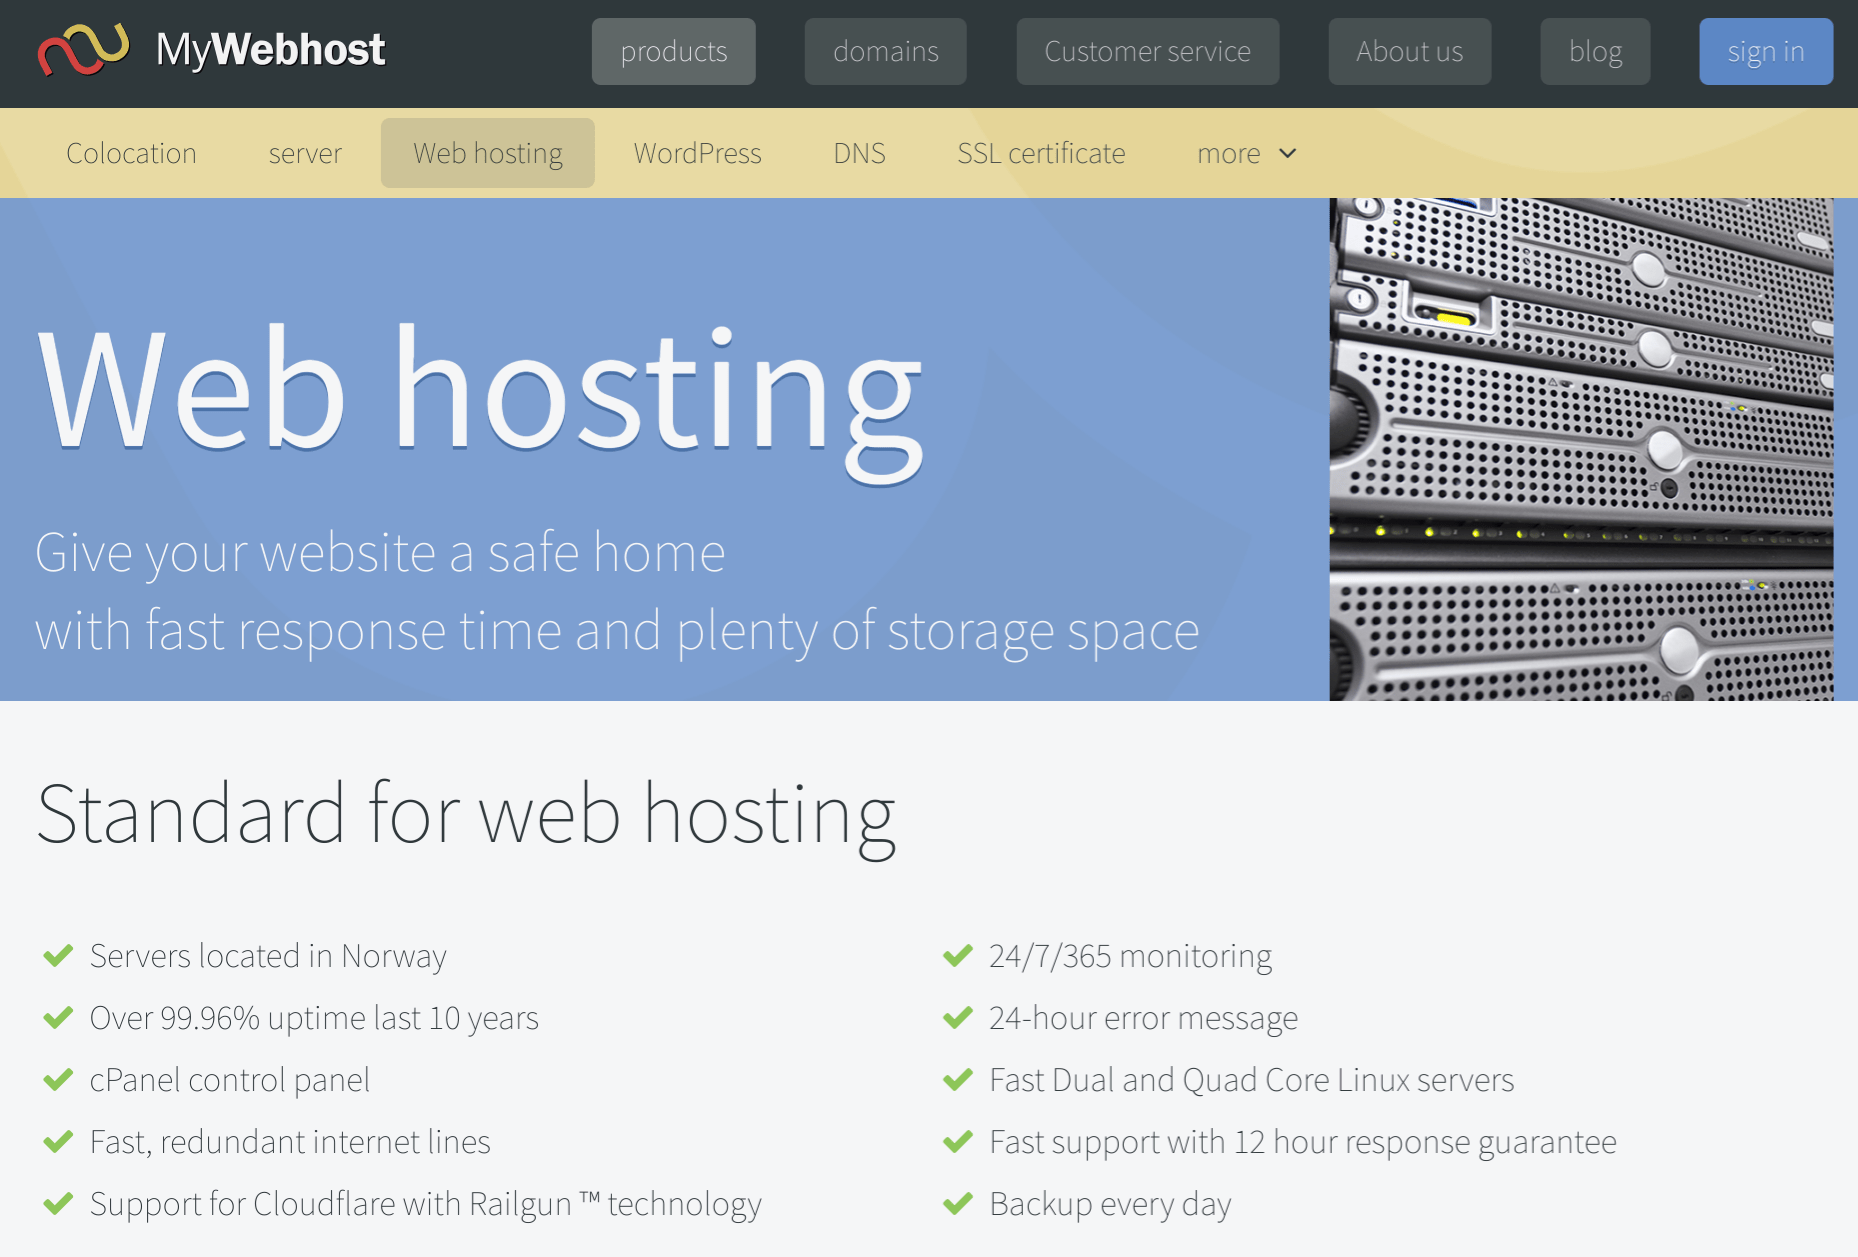 MyWebhost-overview1